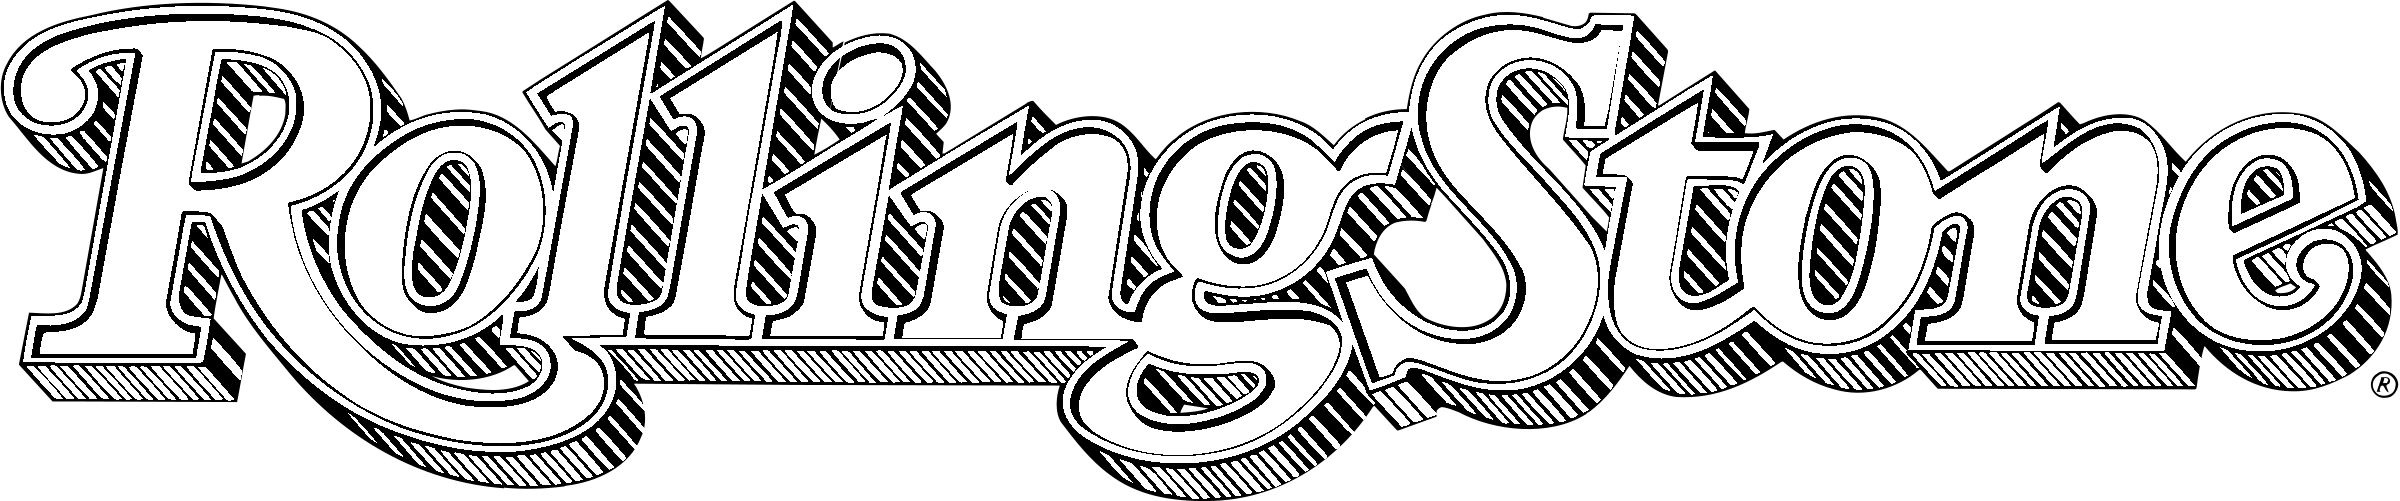 rolling-stone-1-logo-black-and-white.png